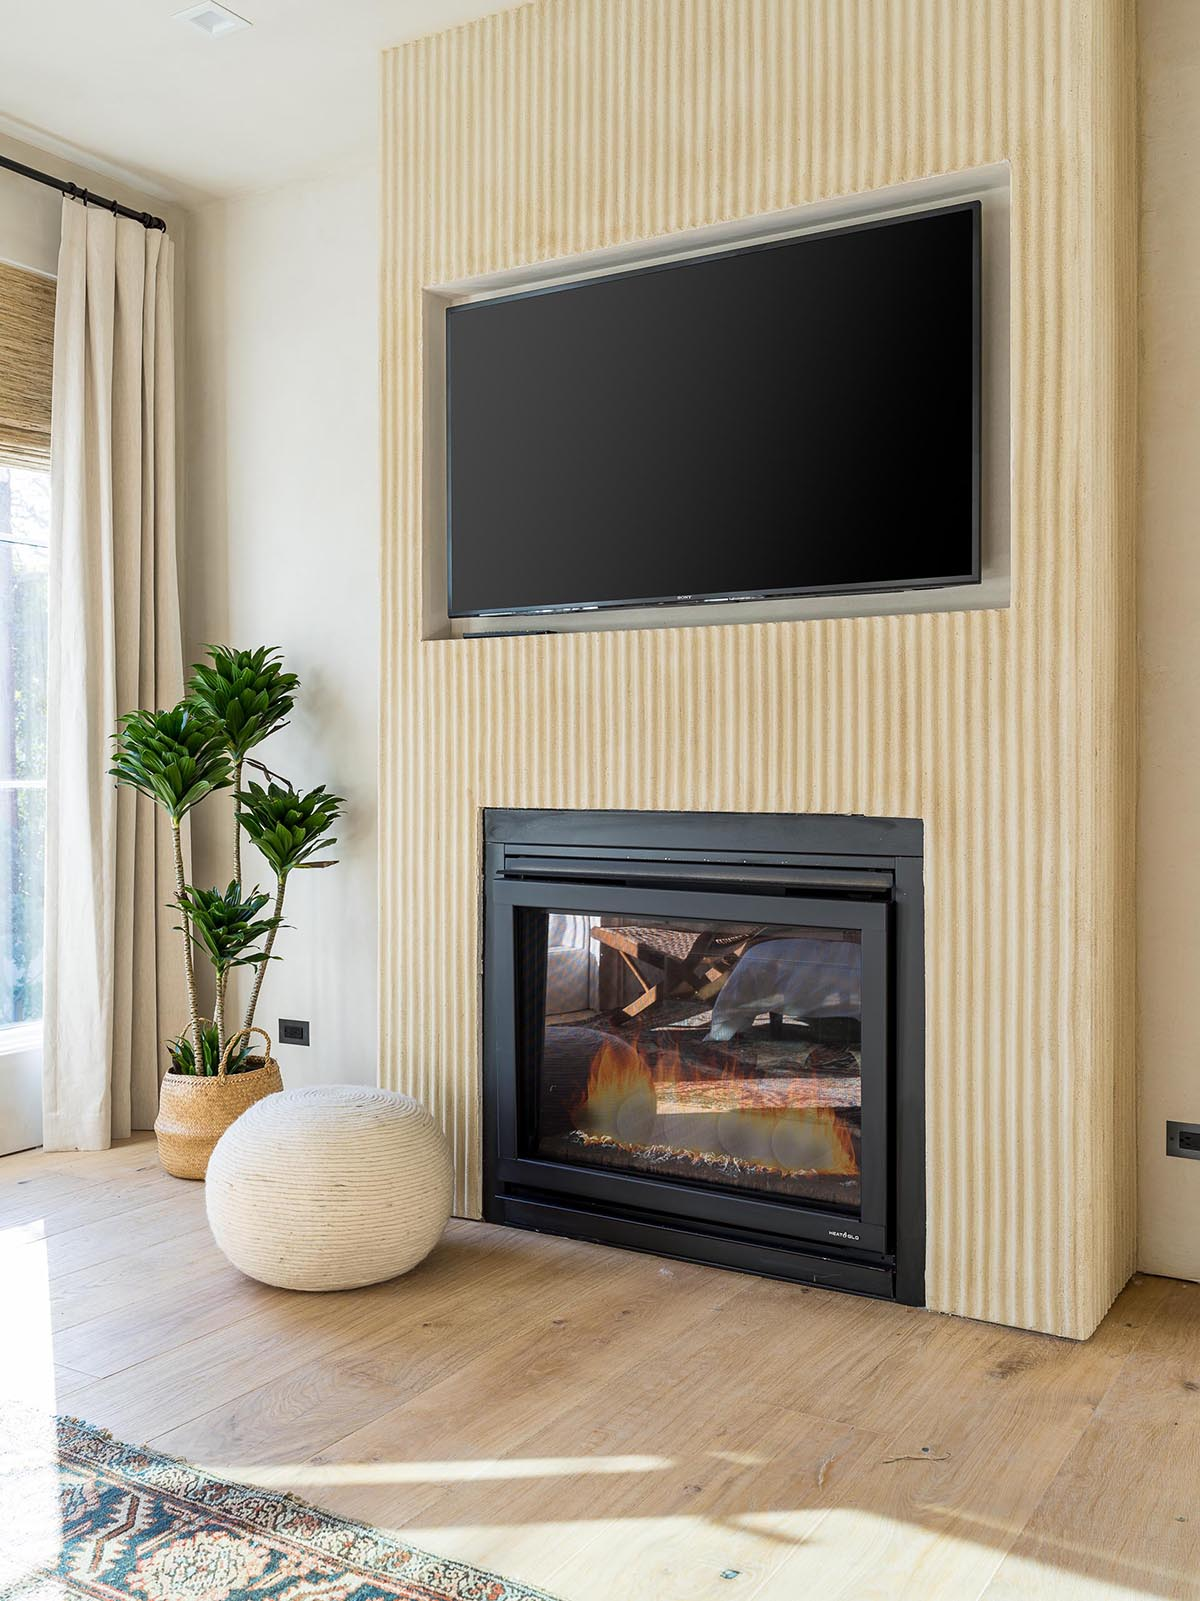 The primary bedroom has textured accents walls, as well as a fireplace and recessed television.